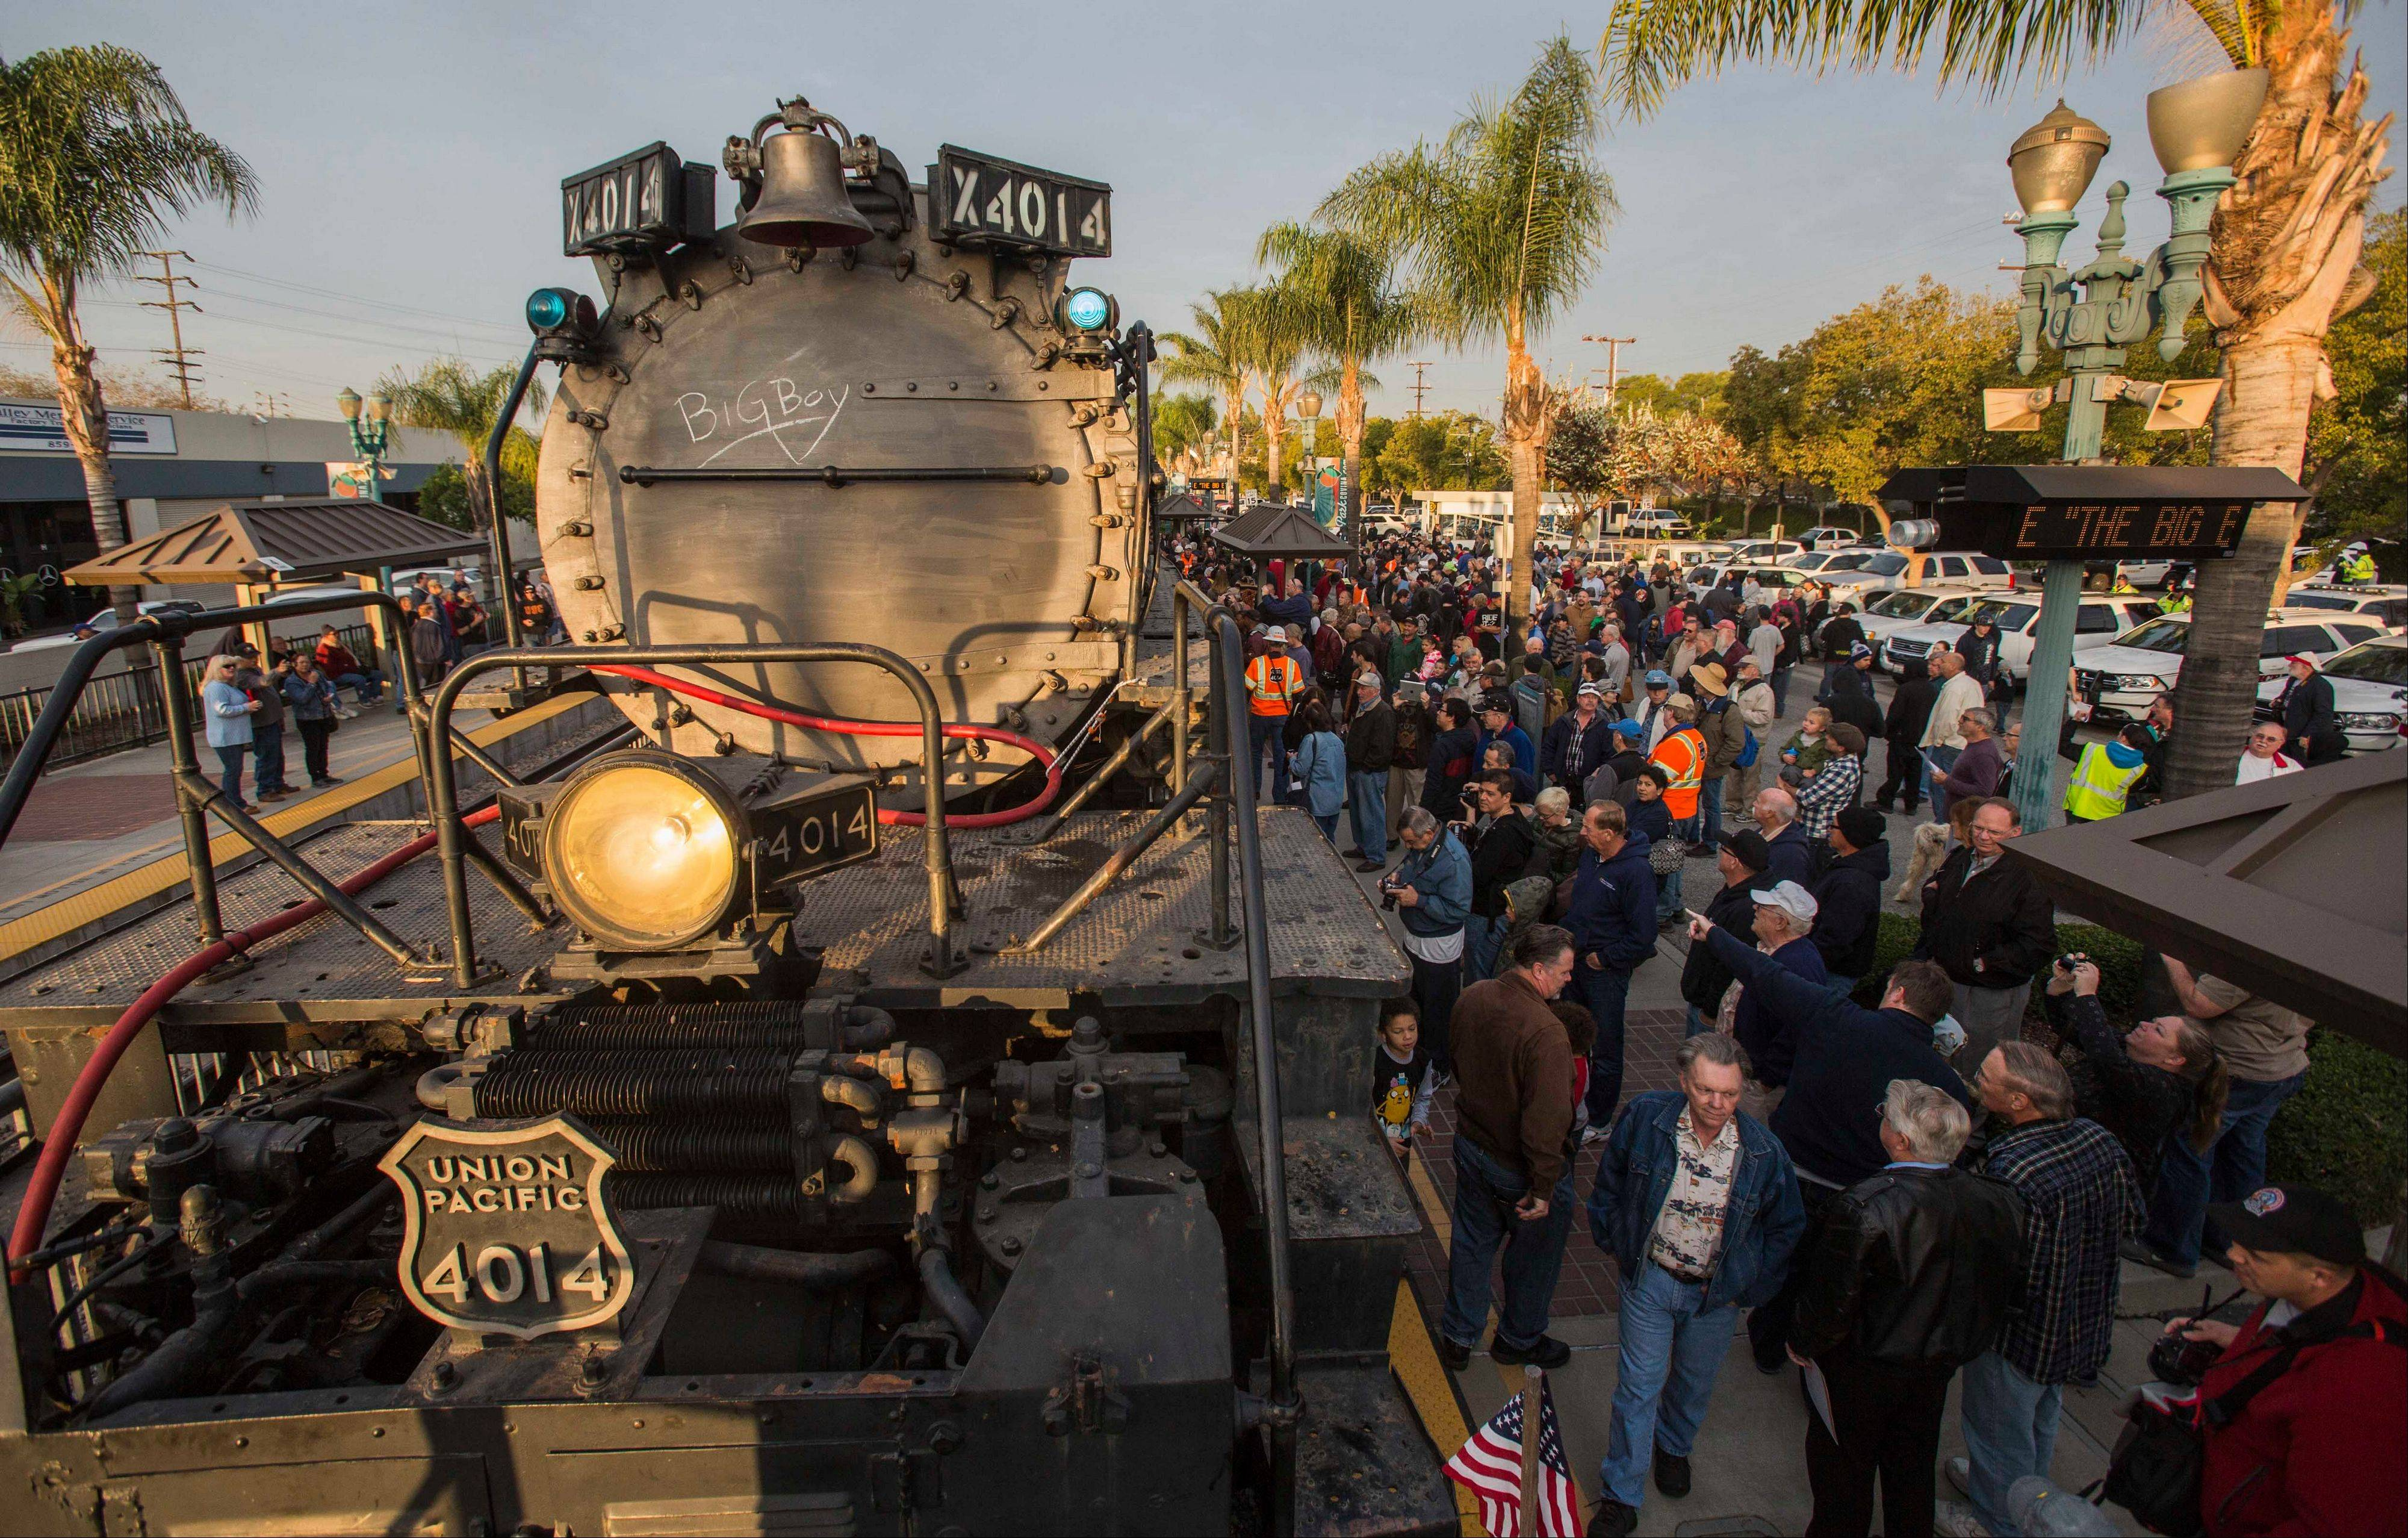 Spectators view the historic 600-ton locomotive, Union Pacific Big Boy No. 4014, Sunday in Covina, Calif.